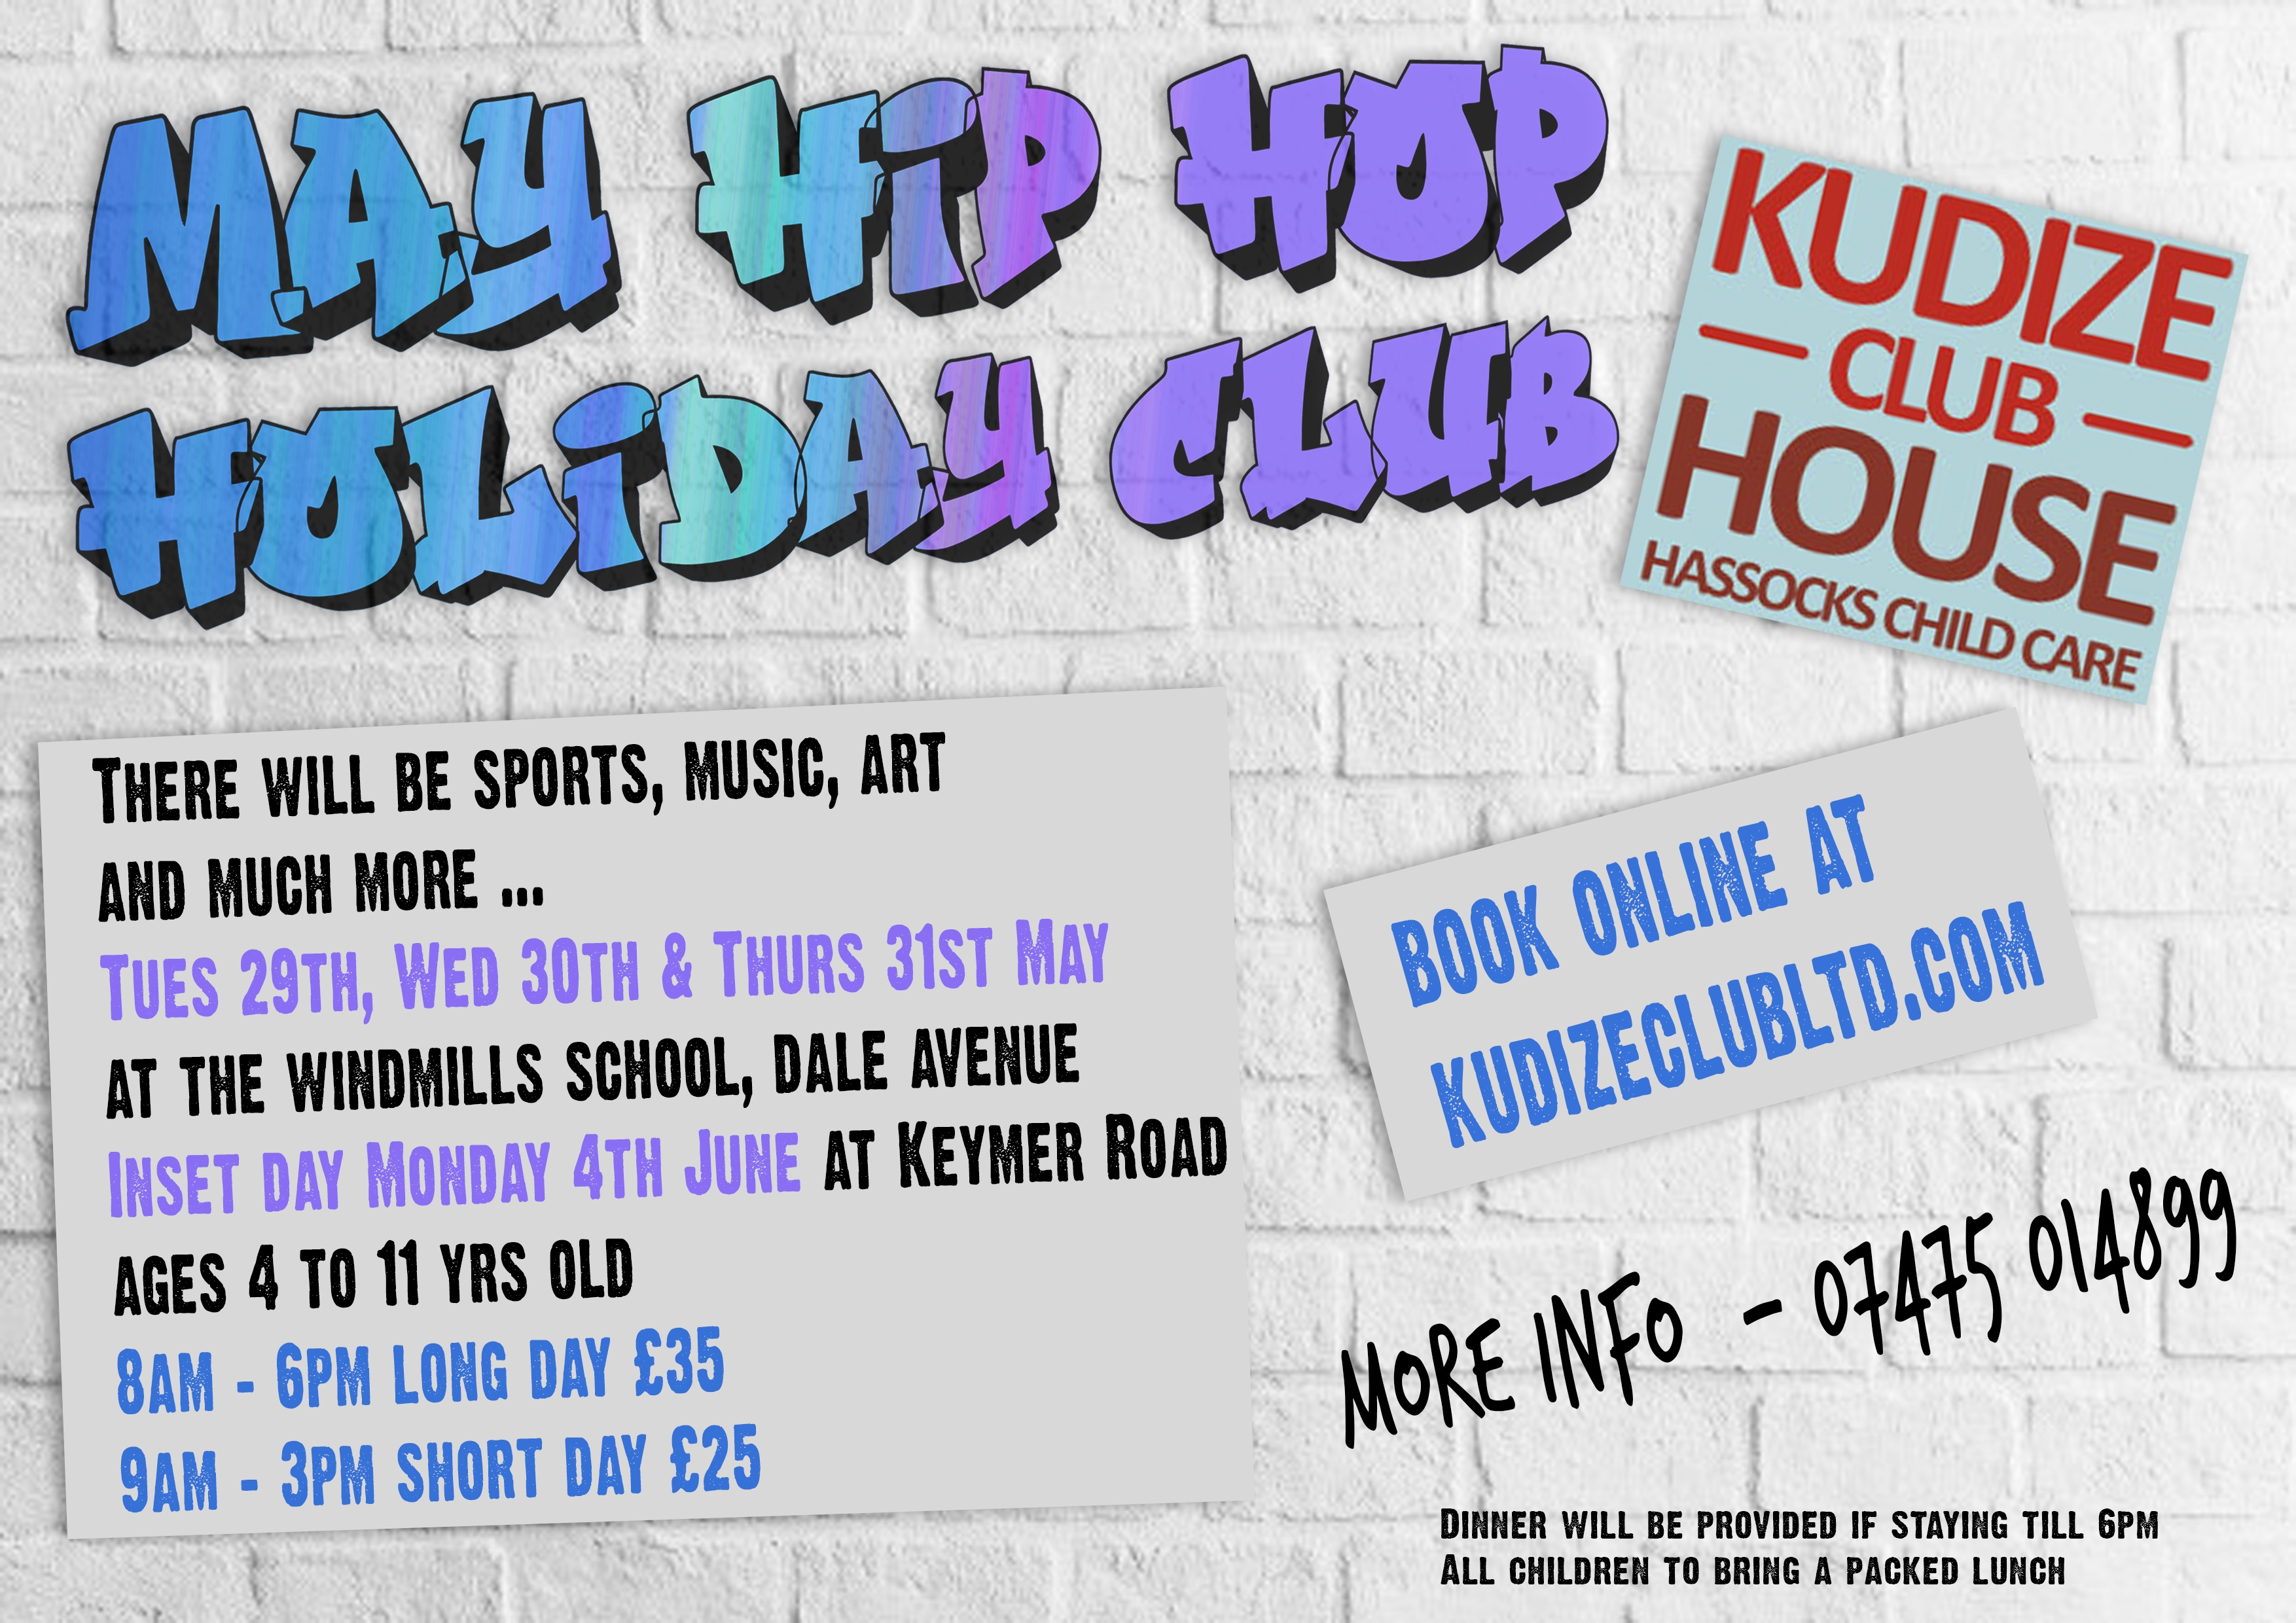 Hop Hop Holiday Club at The Windmills Junior School Dale Avenue